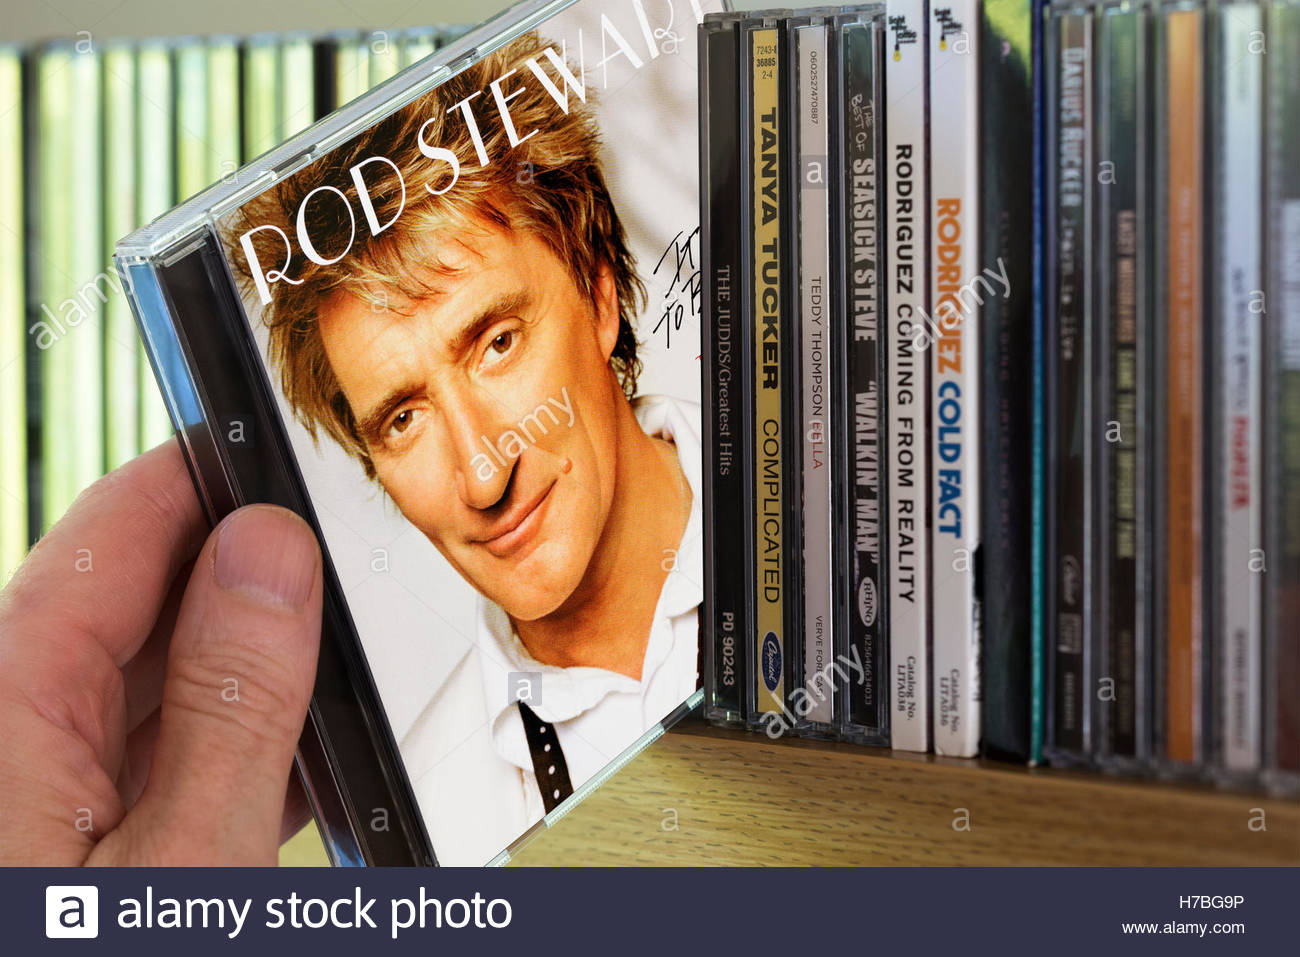 The Story So Far, The Very Best Of Rod Stewart CD being chosen from a shelf of other CD's Stock Photo